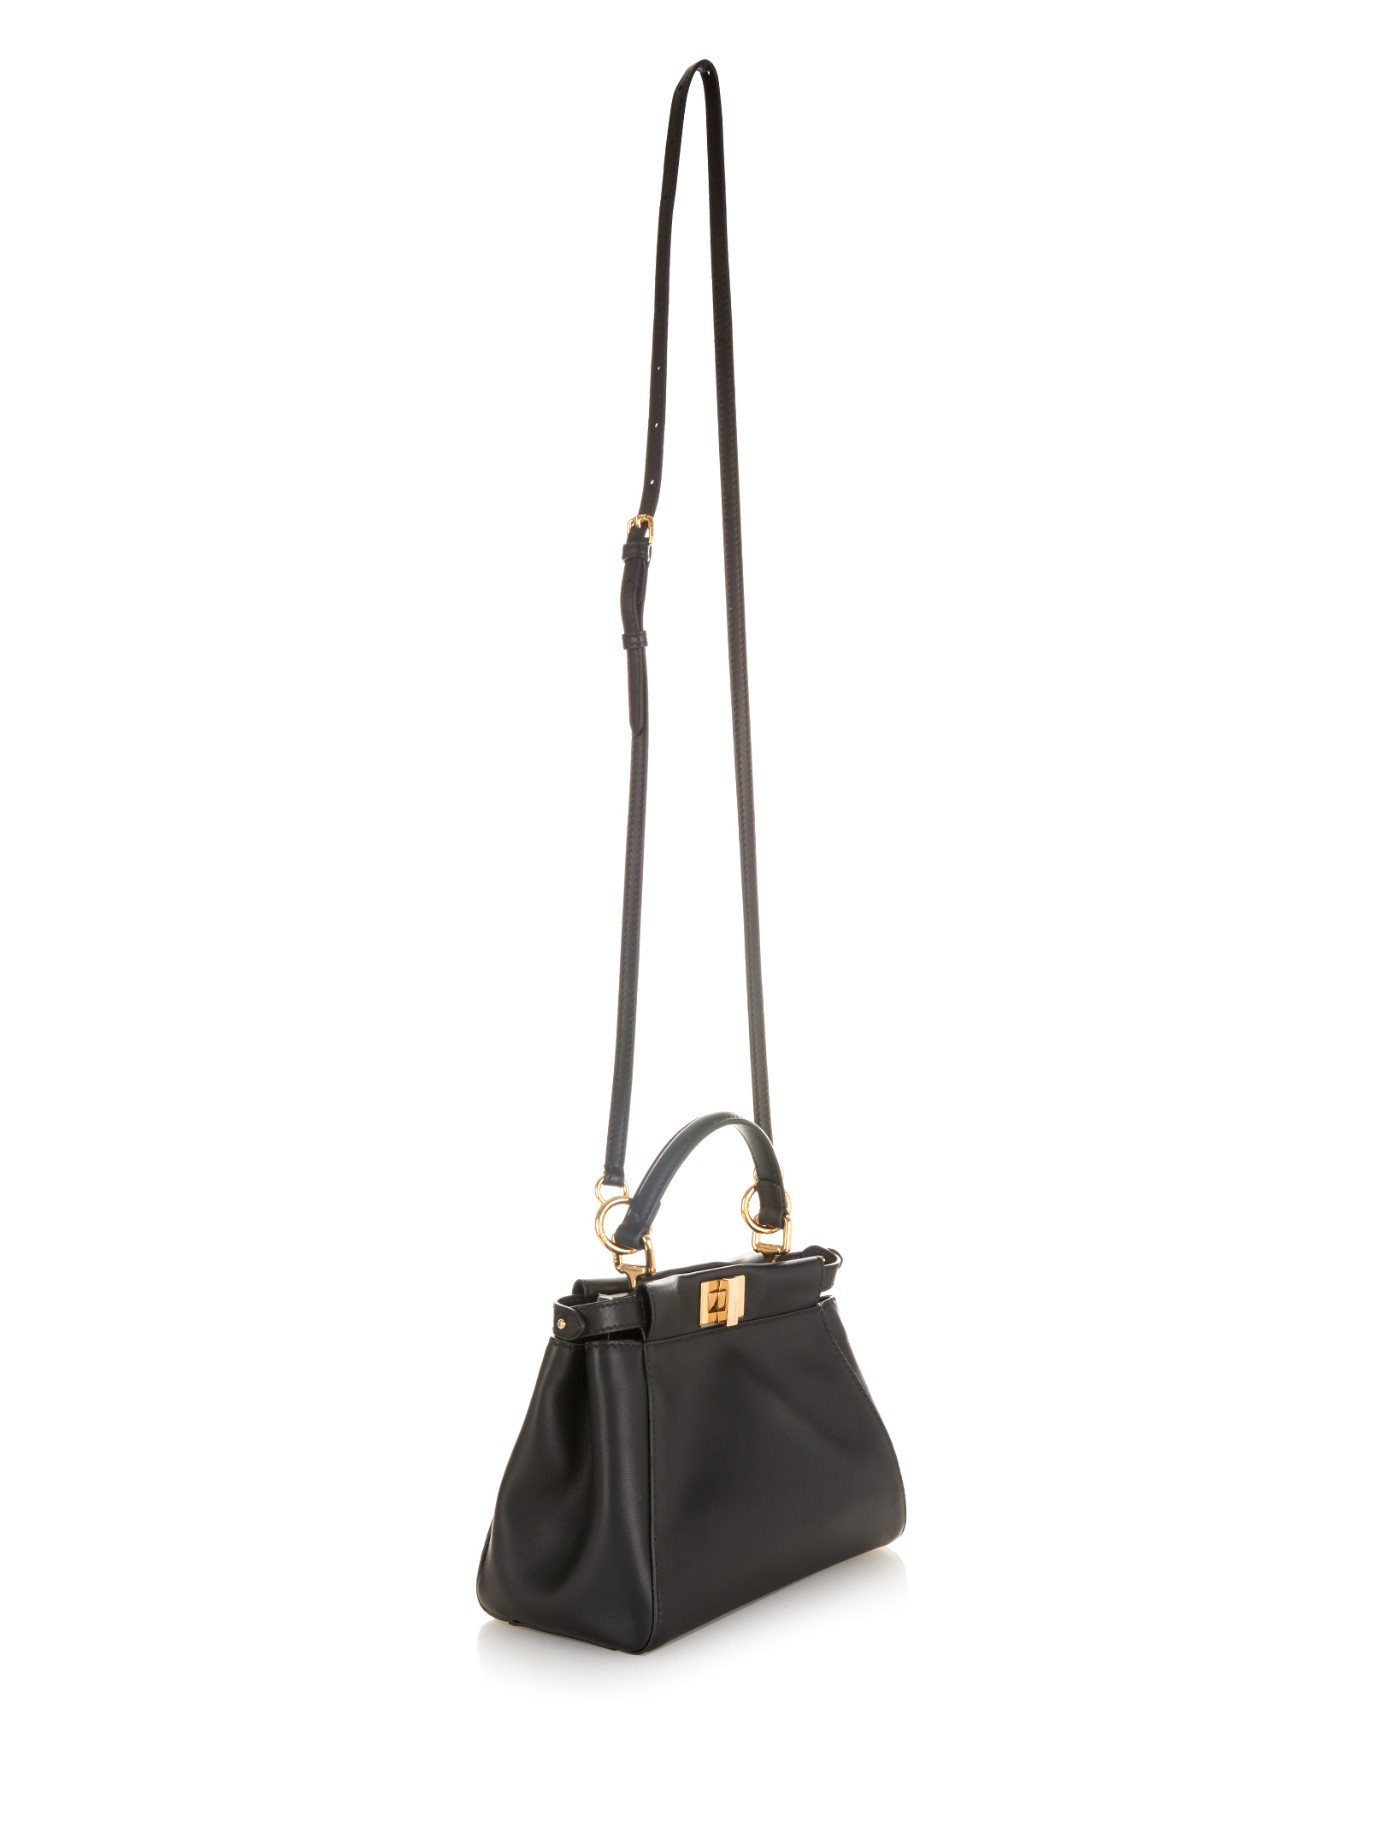 95655a8a01ed Lyst - Fendi Peekaboo Mini Embellished Leather Cross-body Bag in Black